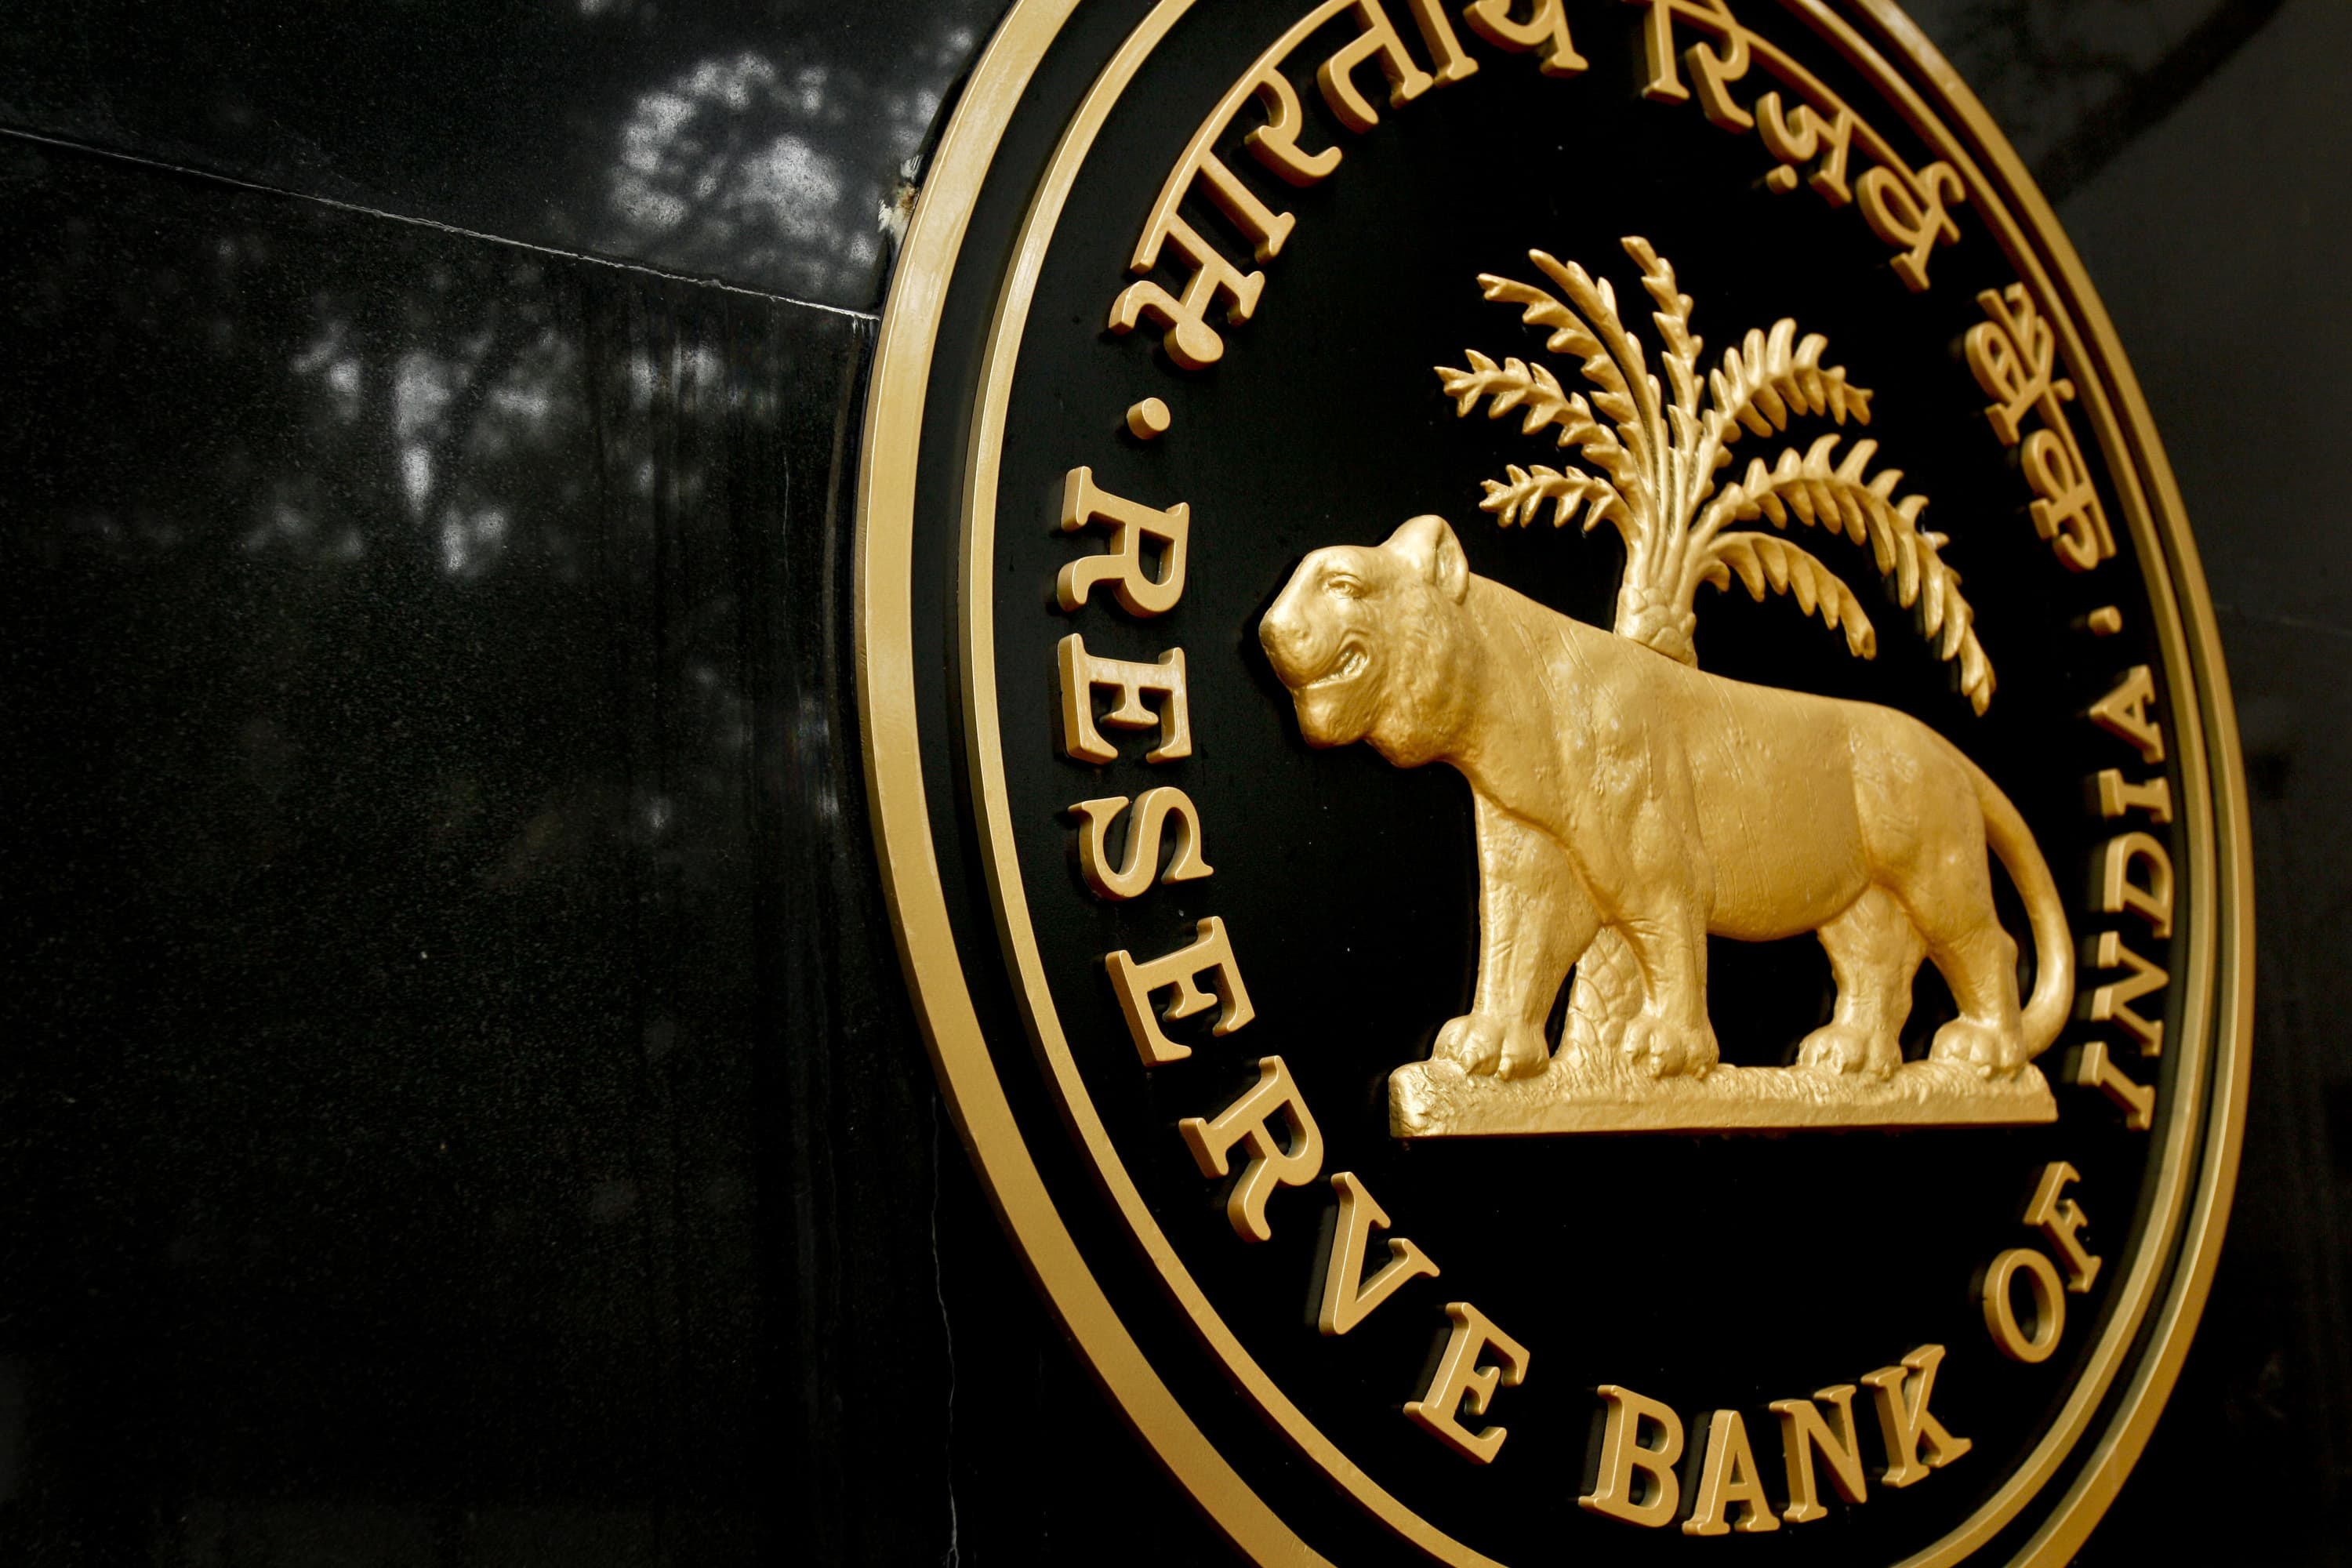 India's central bank is expected to cut rates but that may not be enough to spur growth